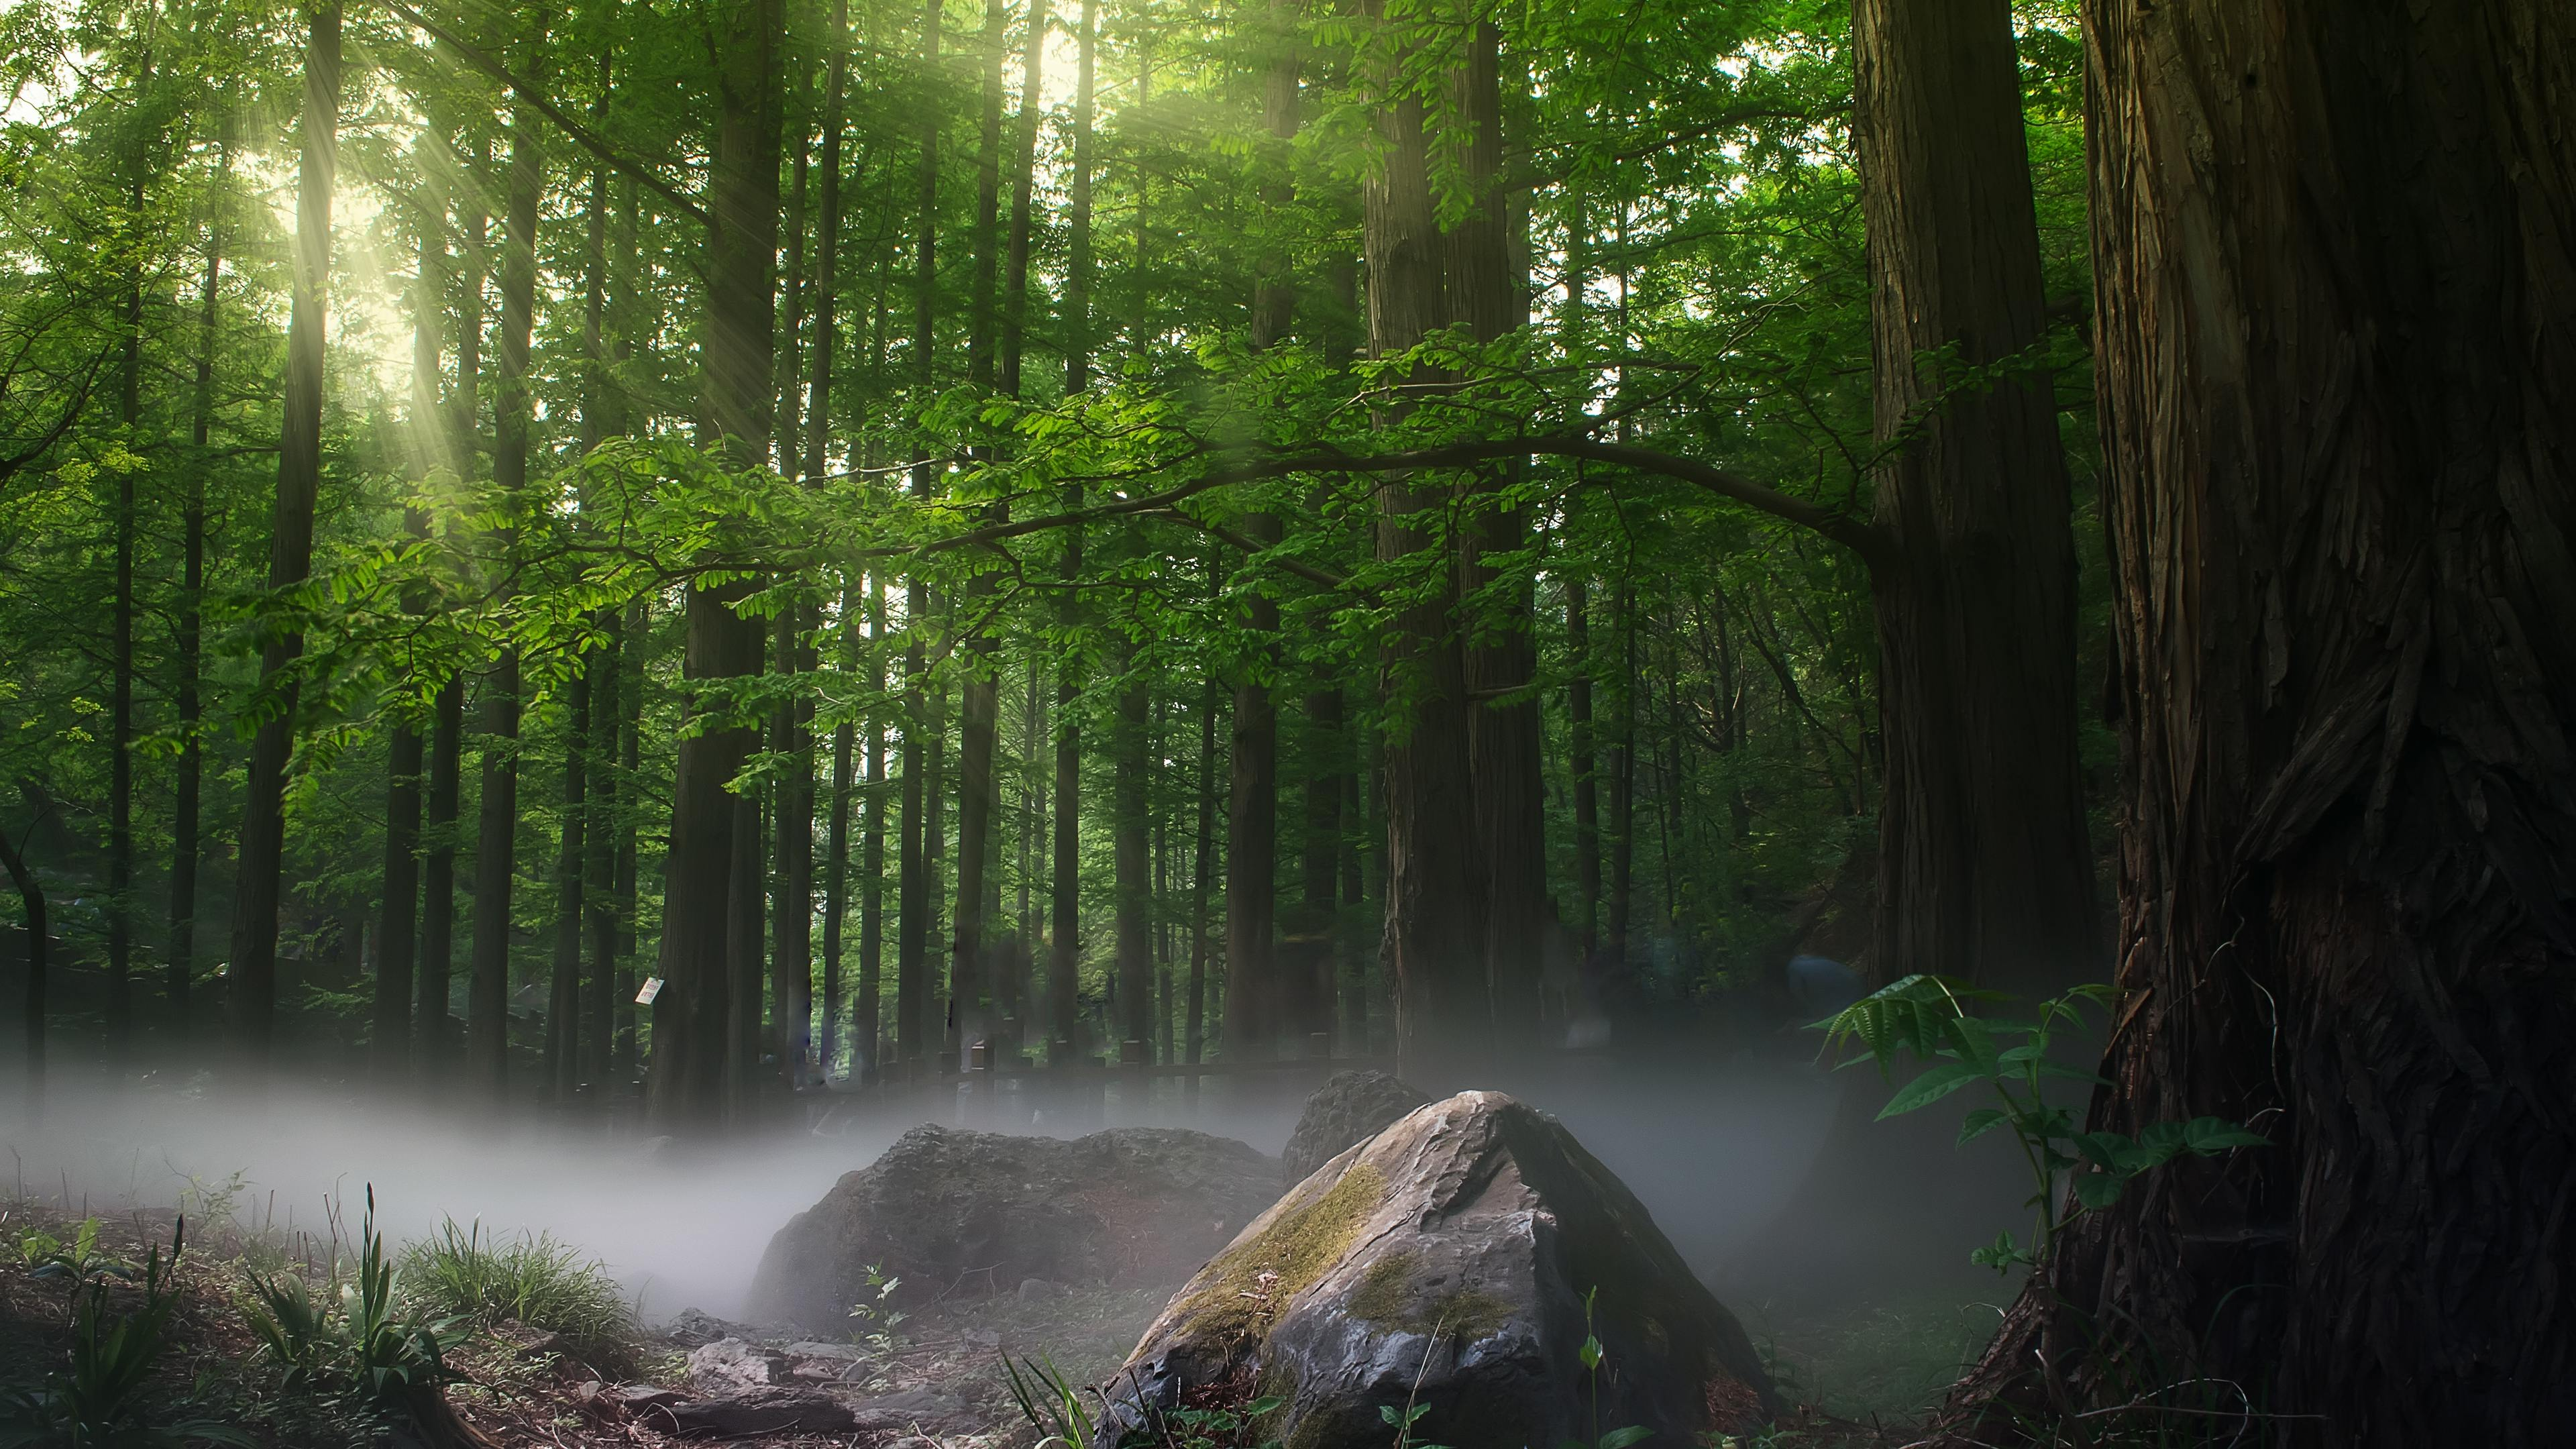 sunbeams forest daylight covered by trees 4k 1540140926 - Sunbeams Forest Daylight Covered By Trees 4k - trees wallpapers, sunbeam wallpapers, nature wallpapers, hd-wallpapers, forest wallpapers, 5k wallpapers, 4k-wallpapers